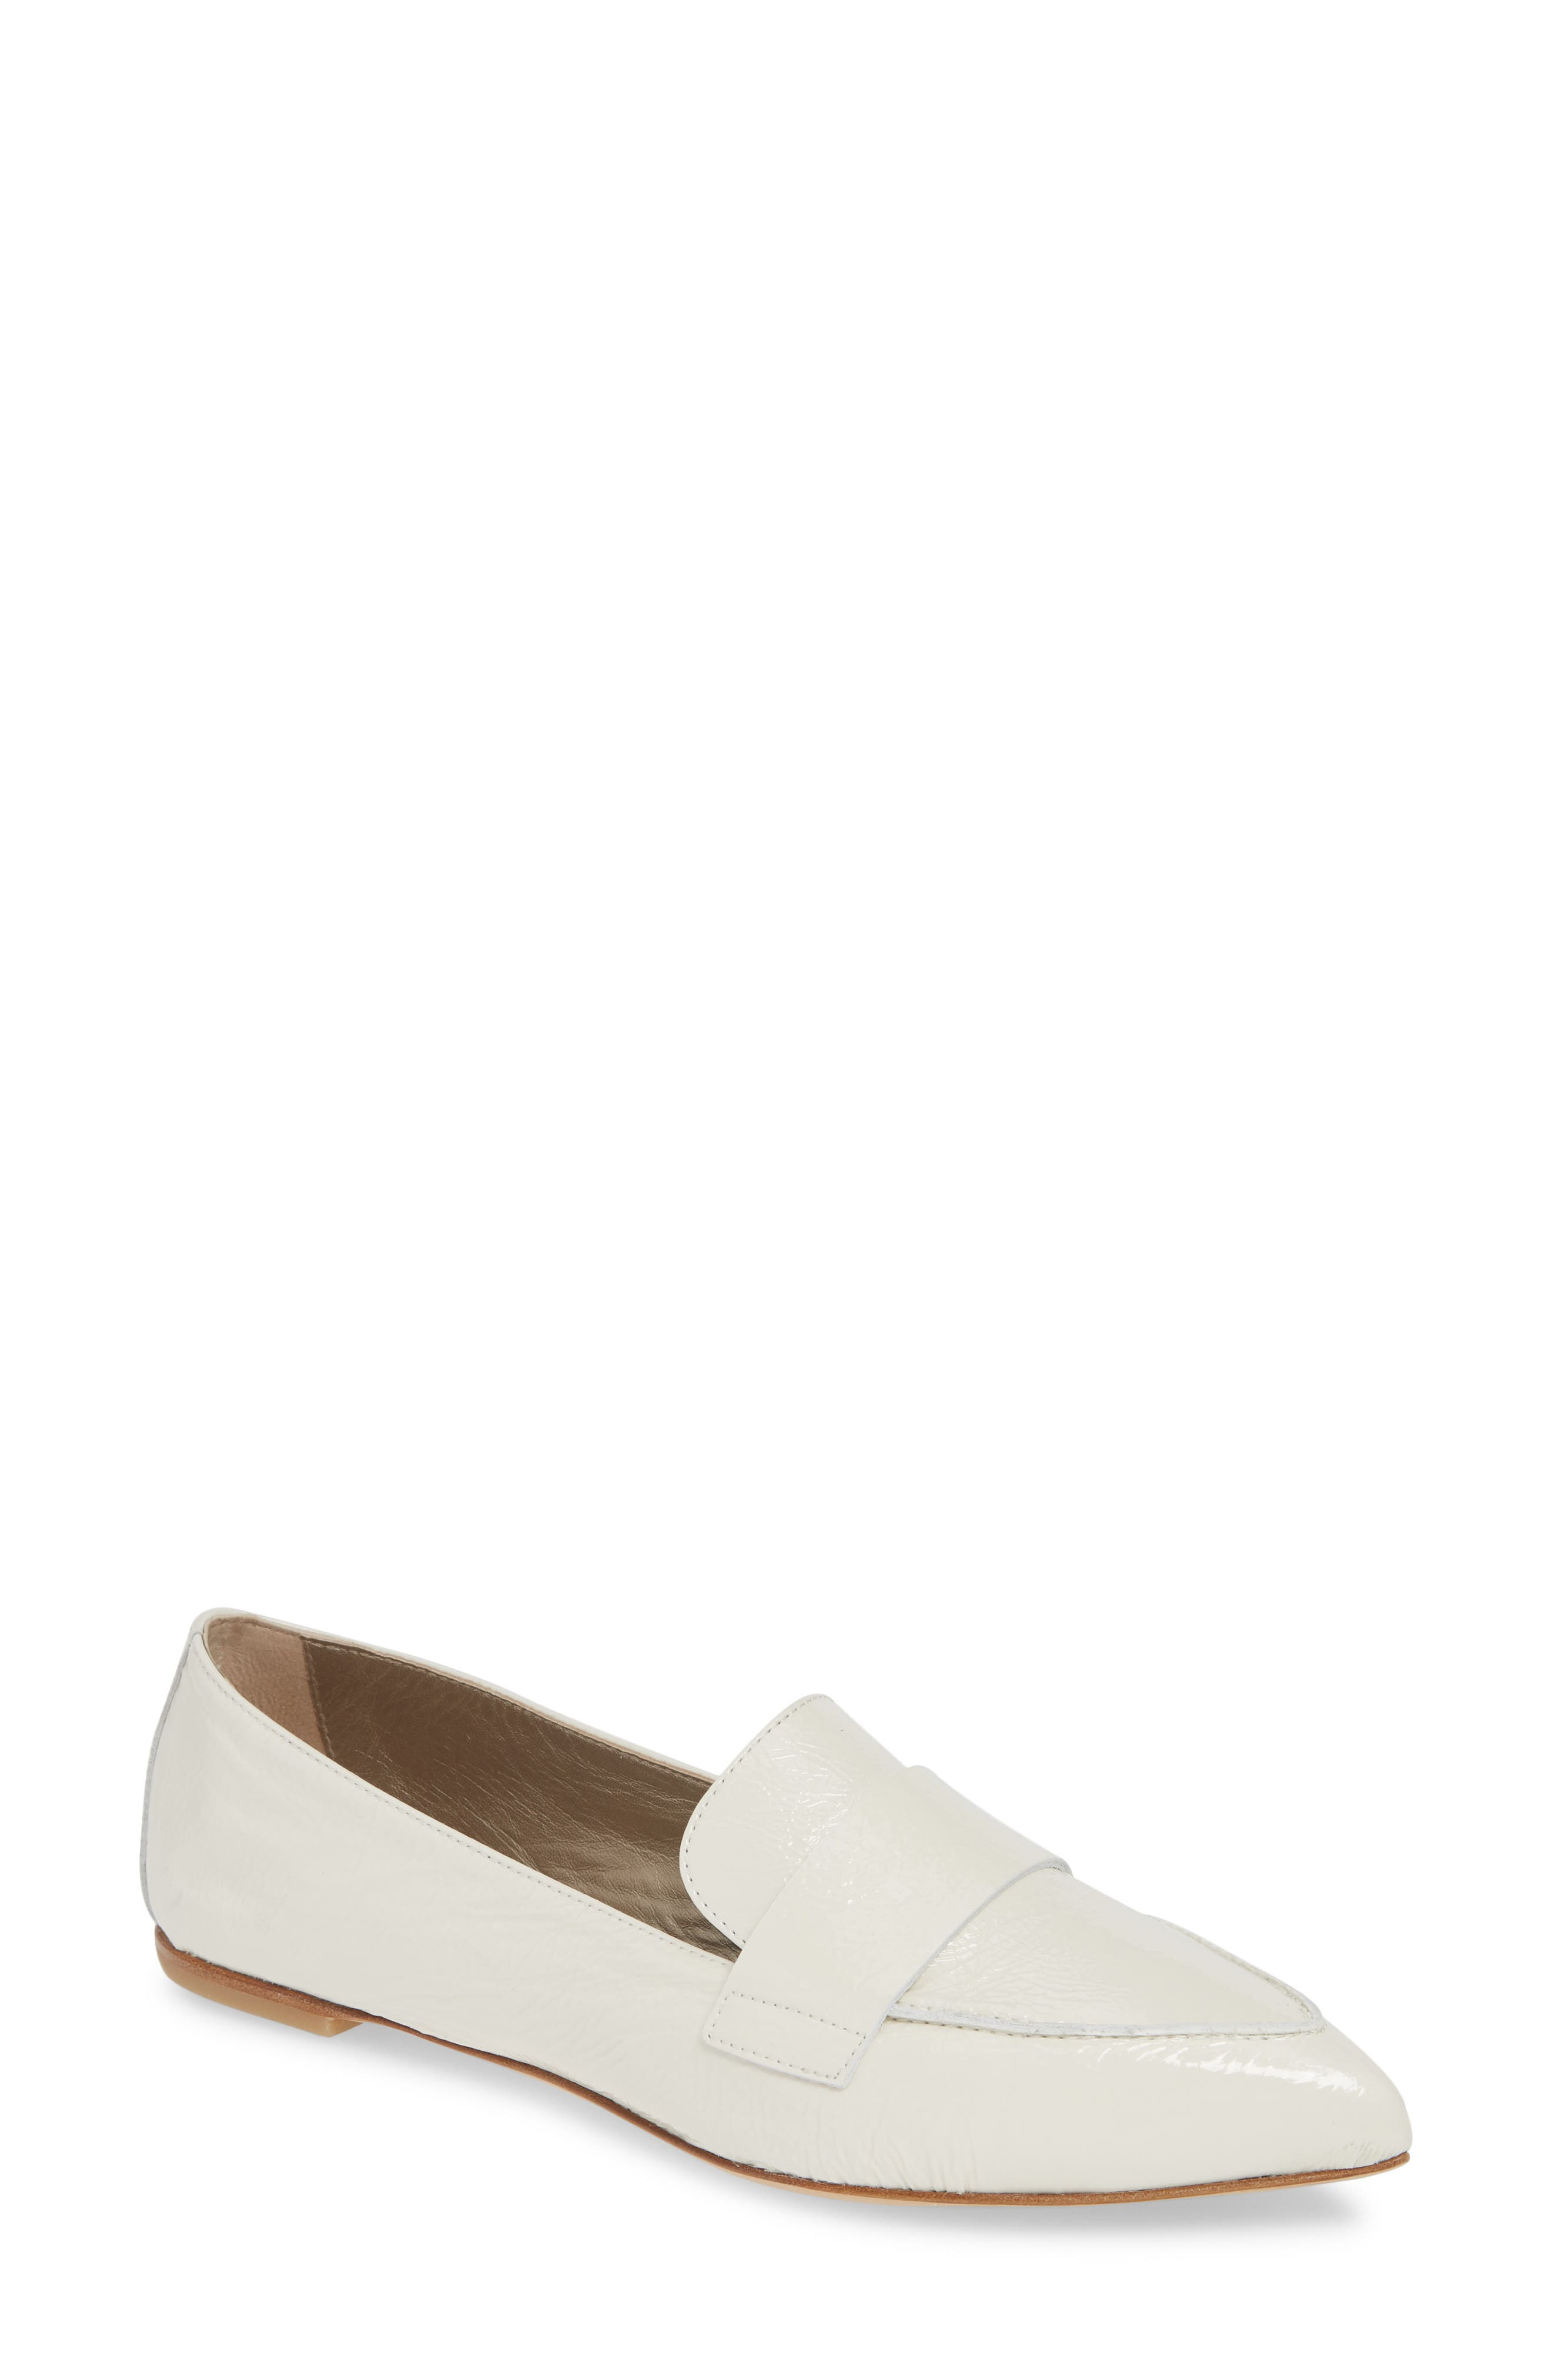 Agl Softy Pointy Toe Moccasin Loafer - White